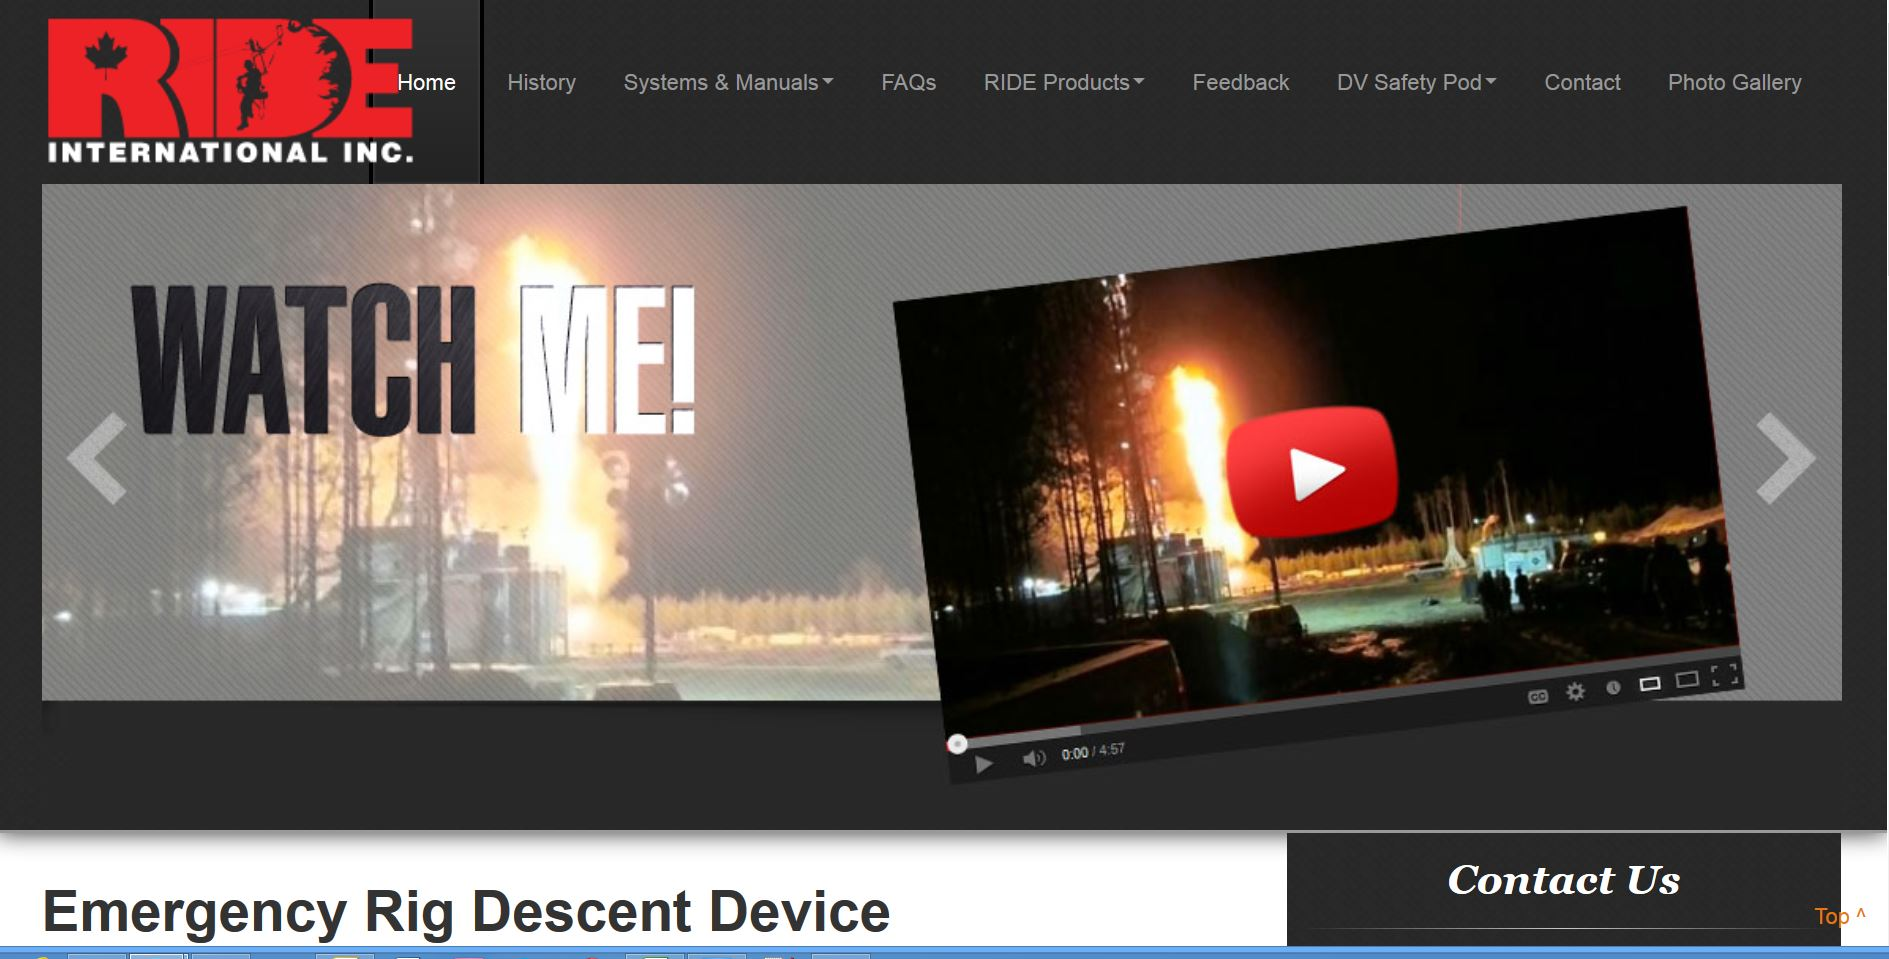 An image of a burning oil well with the tell-tale Youtube video icon is a popular feature on the Industrial NetMedia-created website for Ride Inc of Drayton Valley